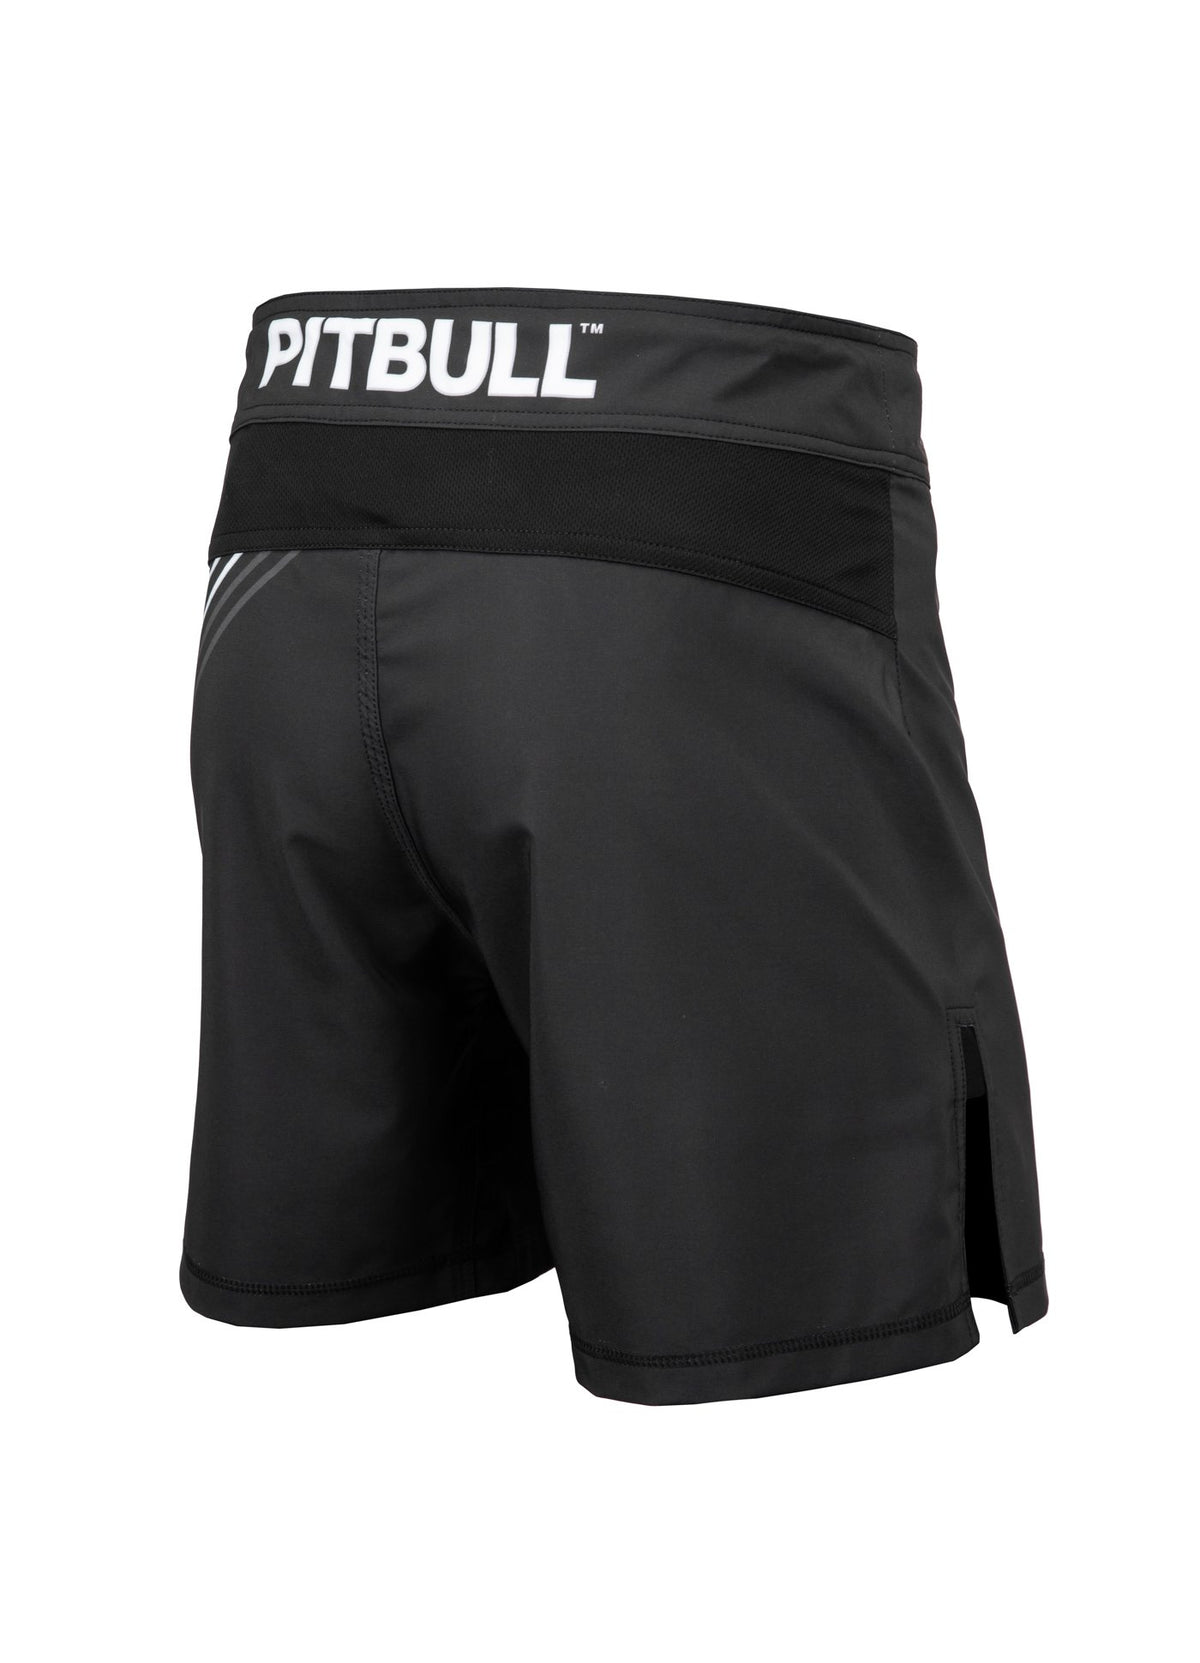 Grappling Shorts Performance 206 PLAYER ONE Black - Pitbull West Coast U.S.A.